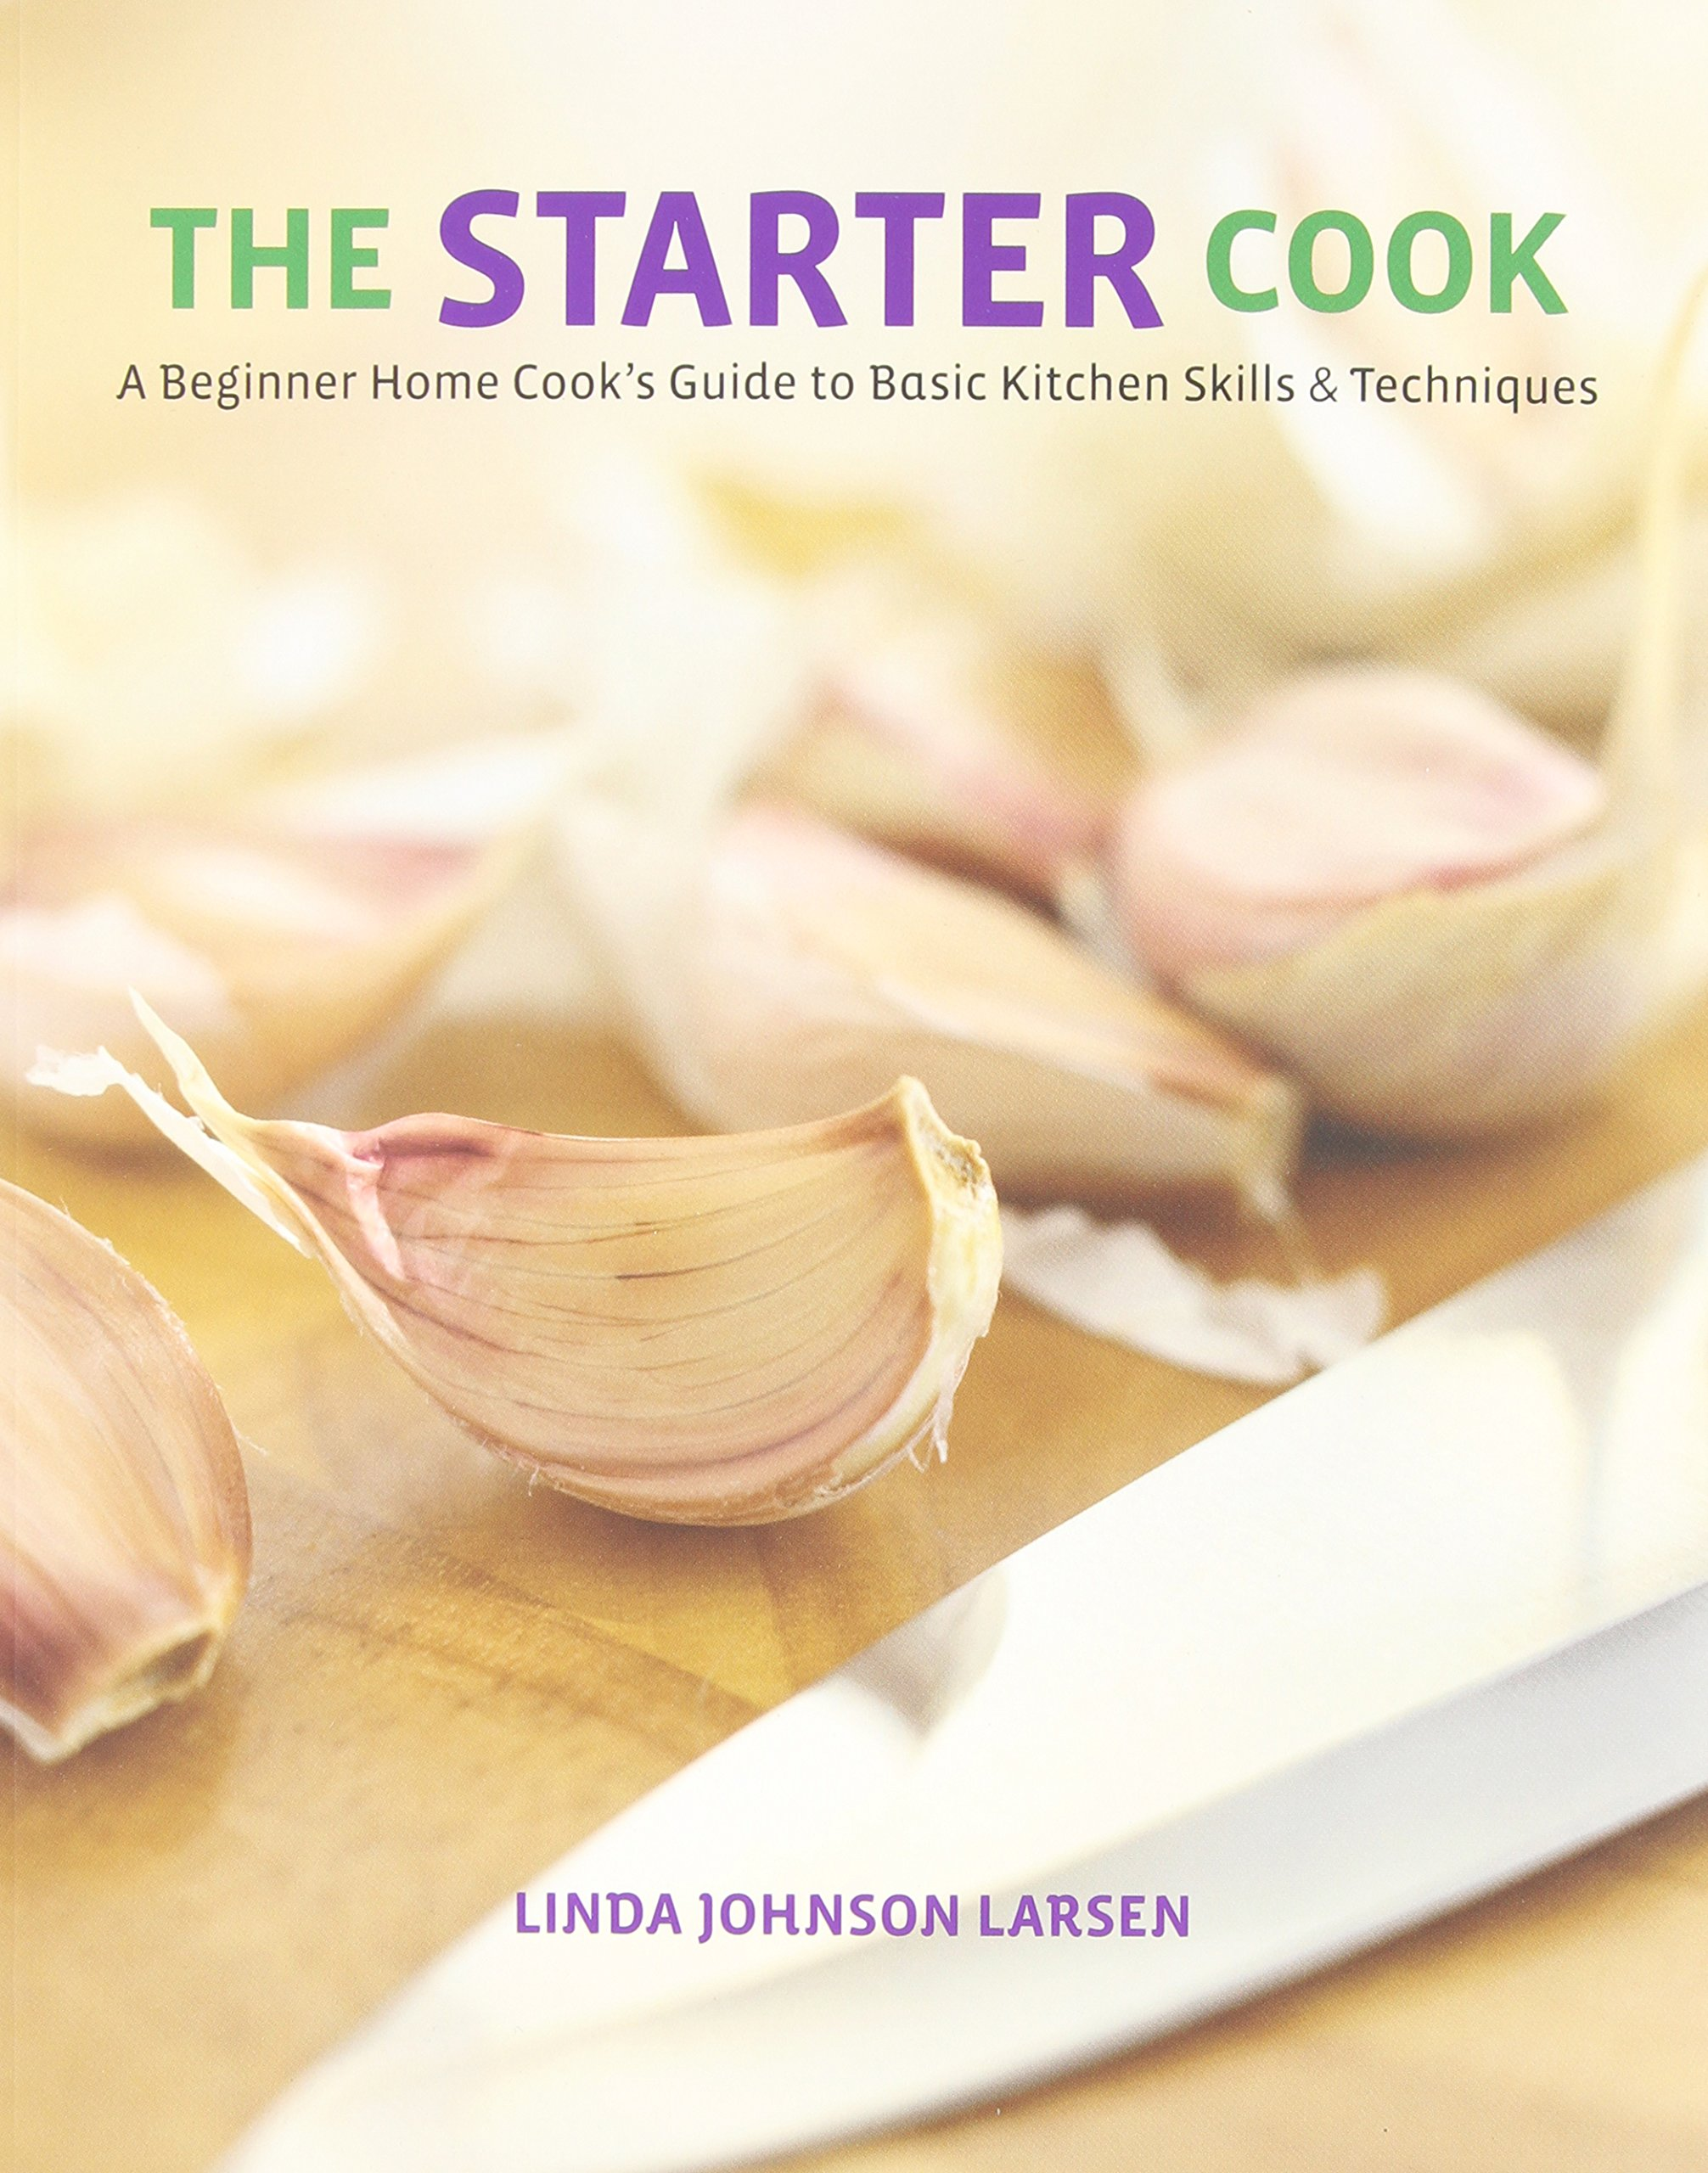 Download Starter Cook: A Beginner Home Cook's Guide To Basic Kitchen Skills & Techniques ebook